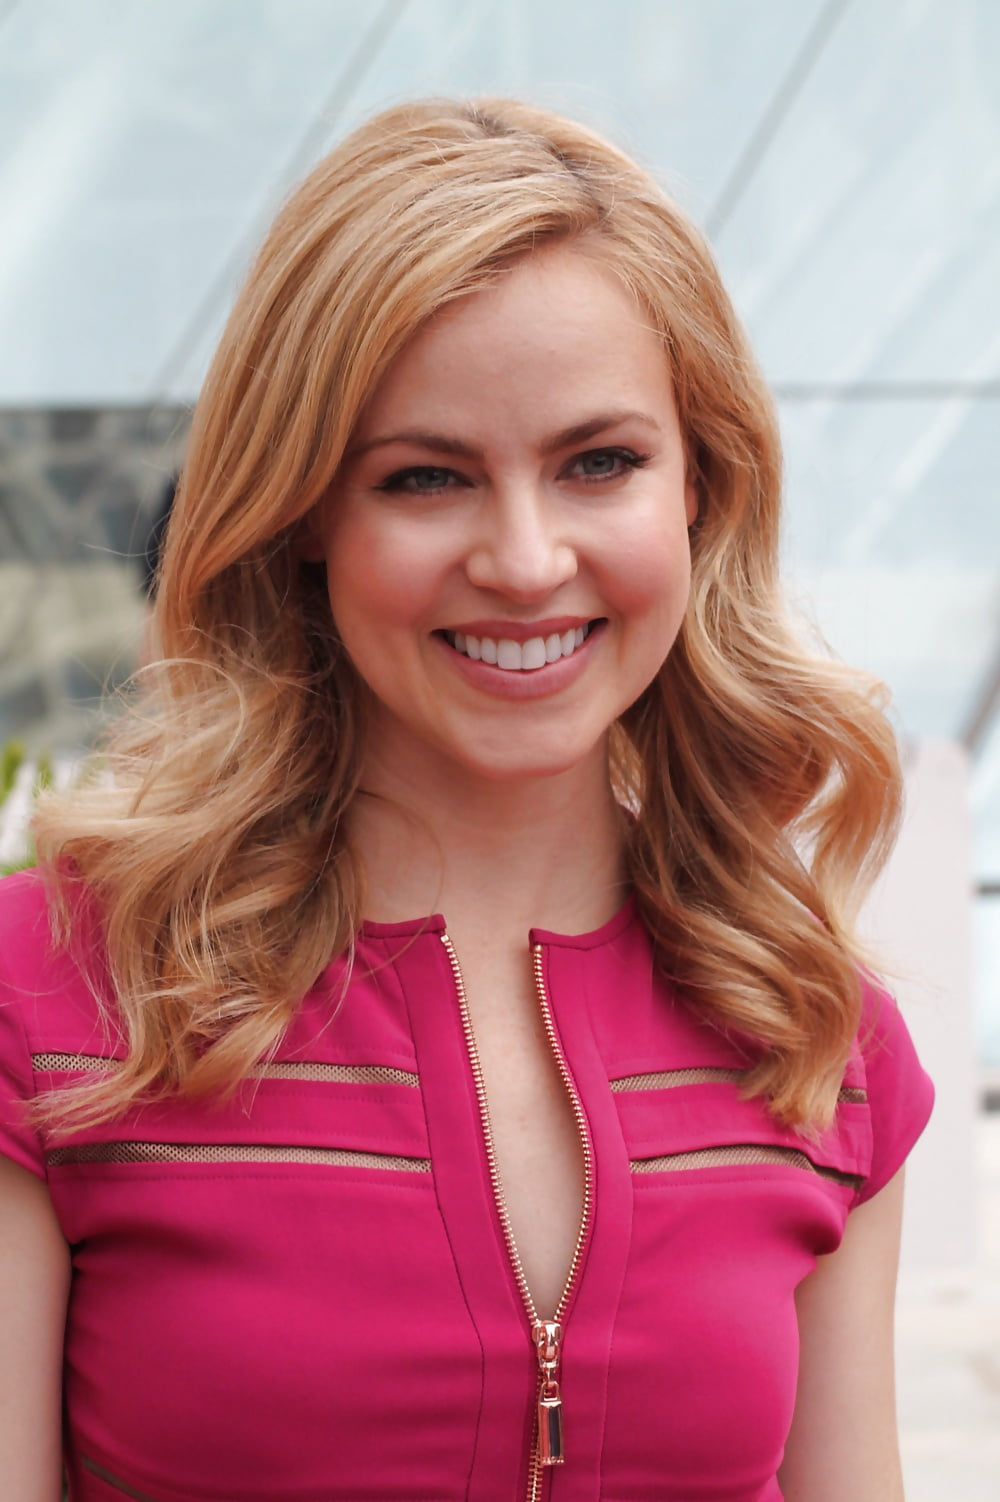 Amanda schull free xhamster porn movies watch